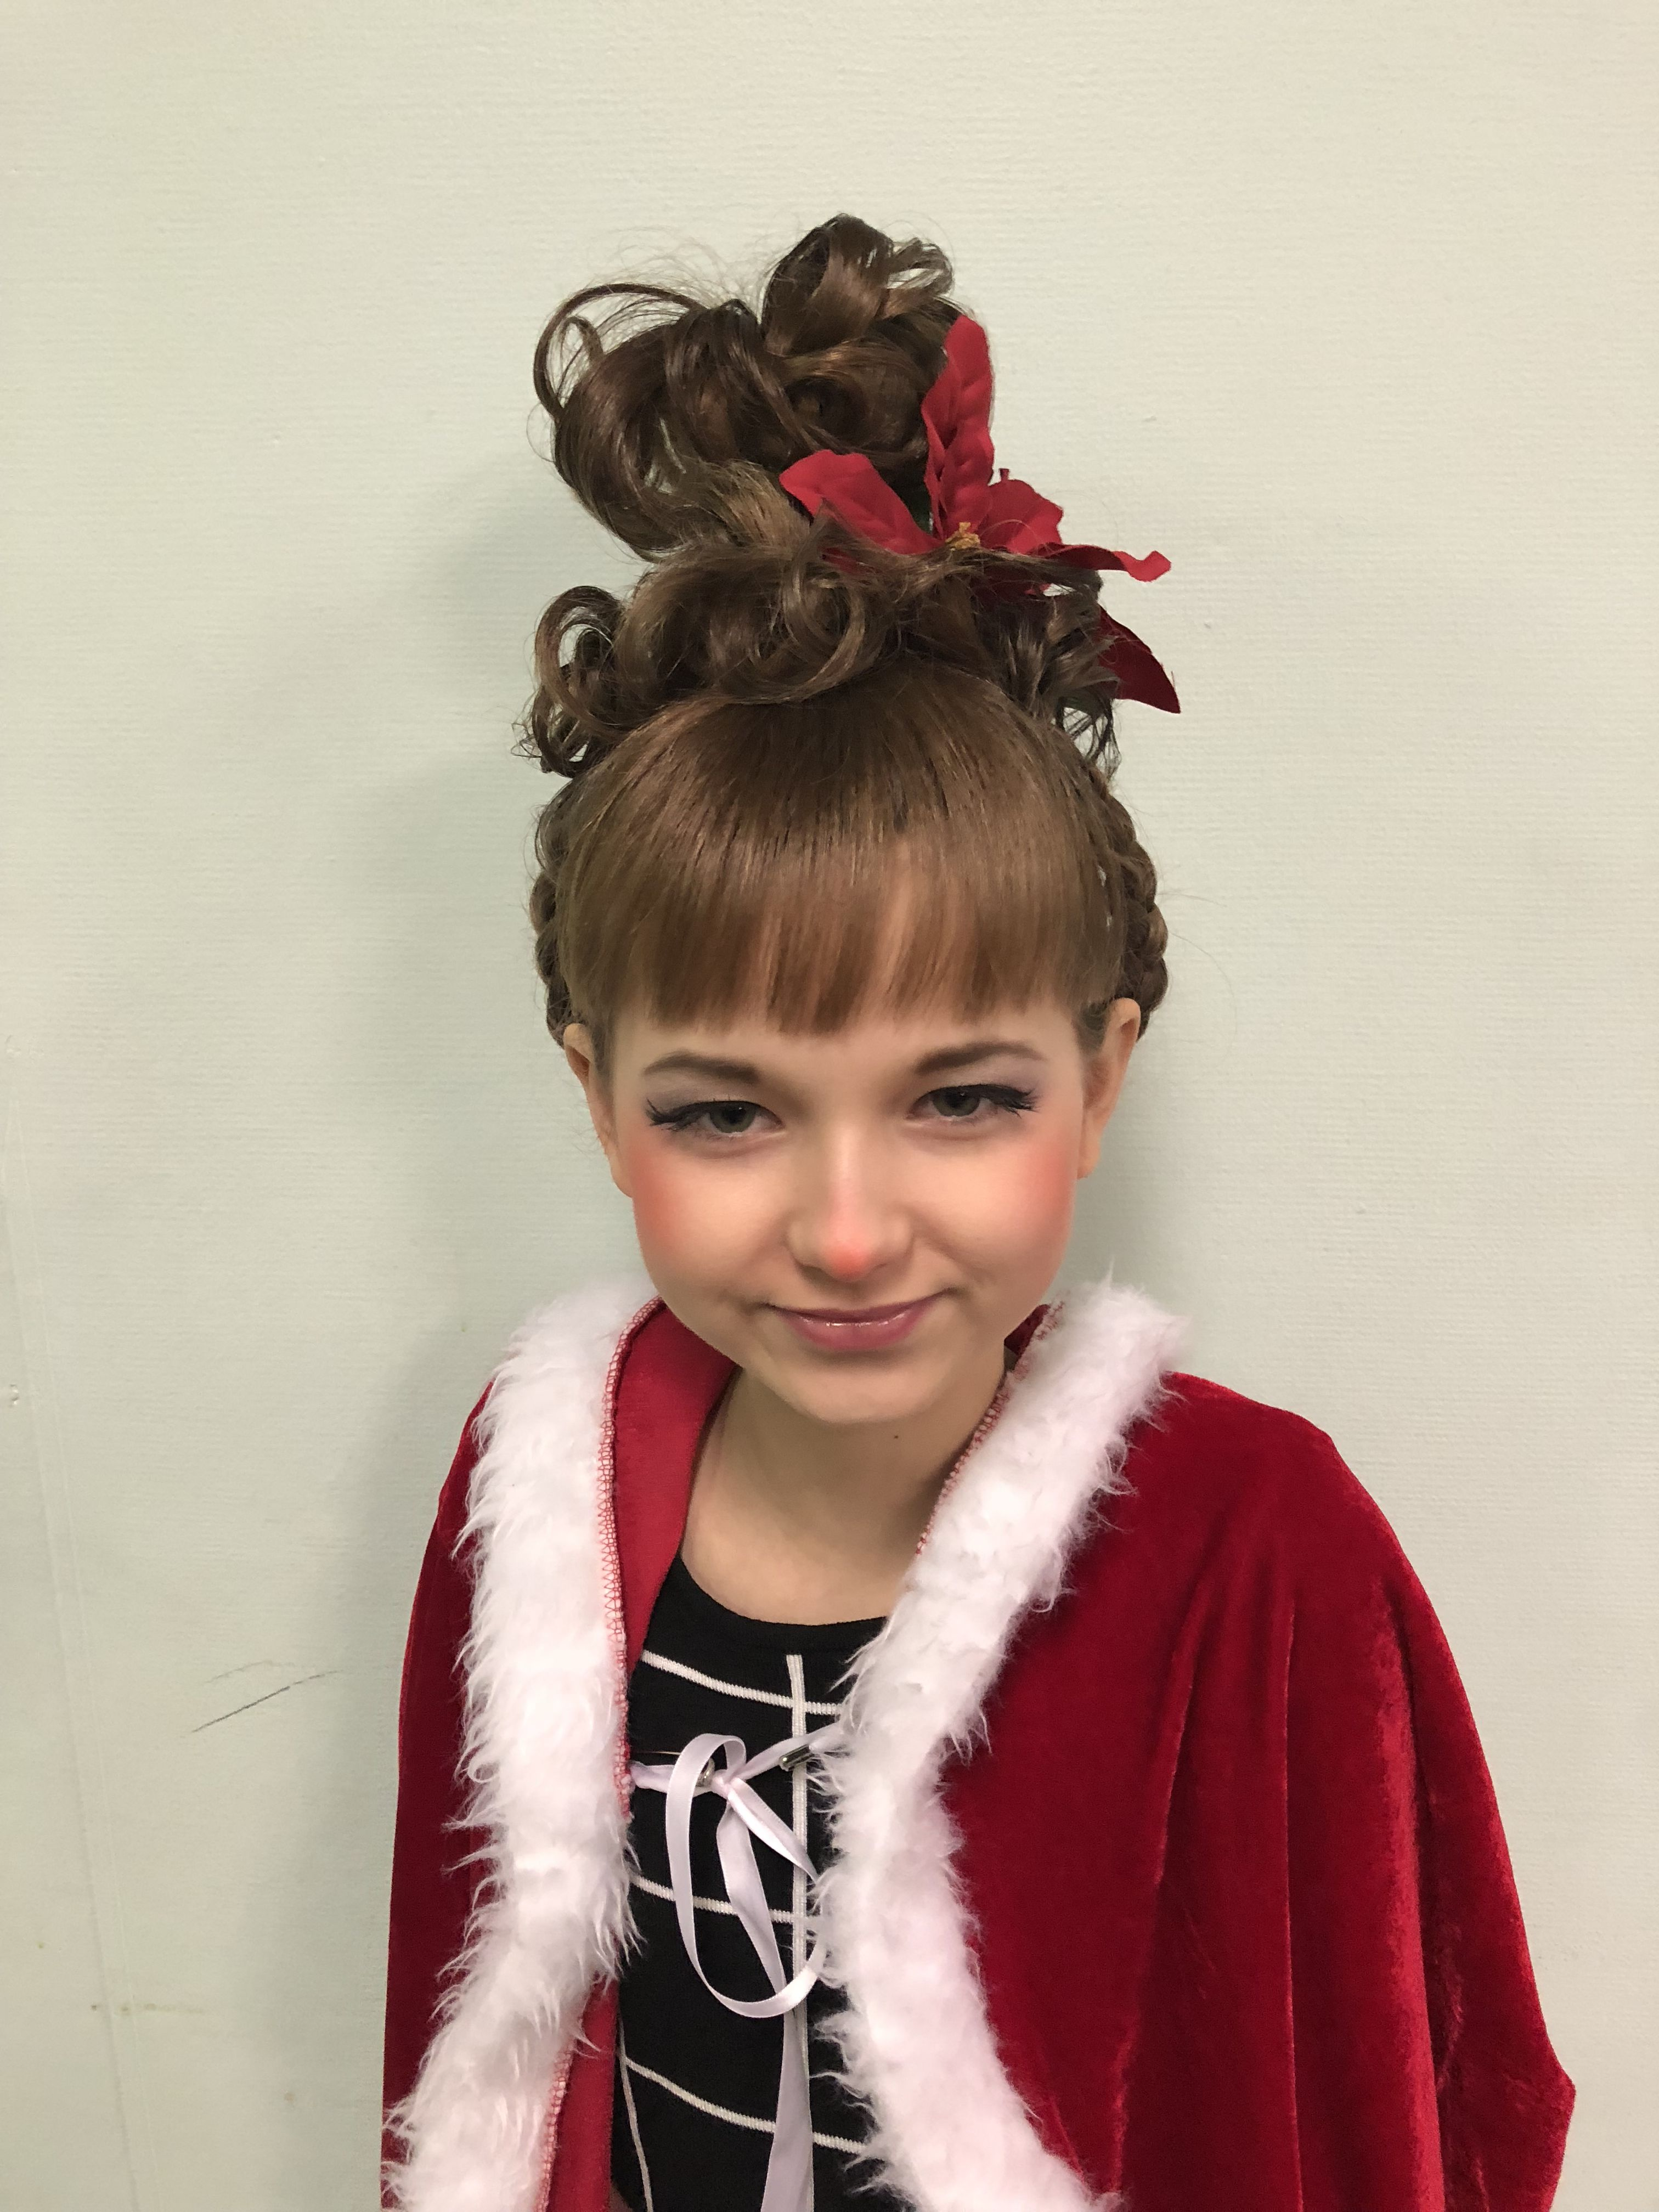 Cindy Lou Who Hairstyle: Cindy Lou Whoville Grinch Costume Play Halloween